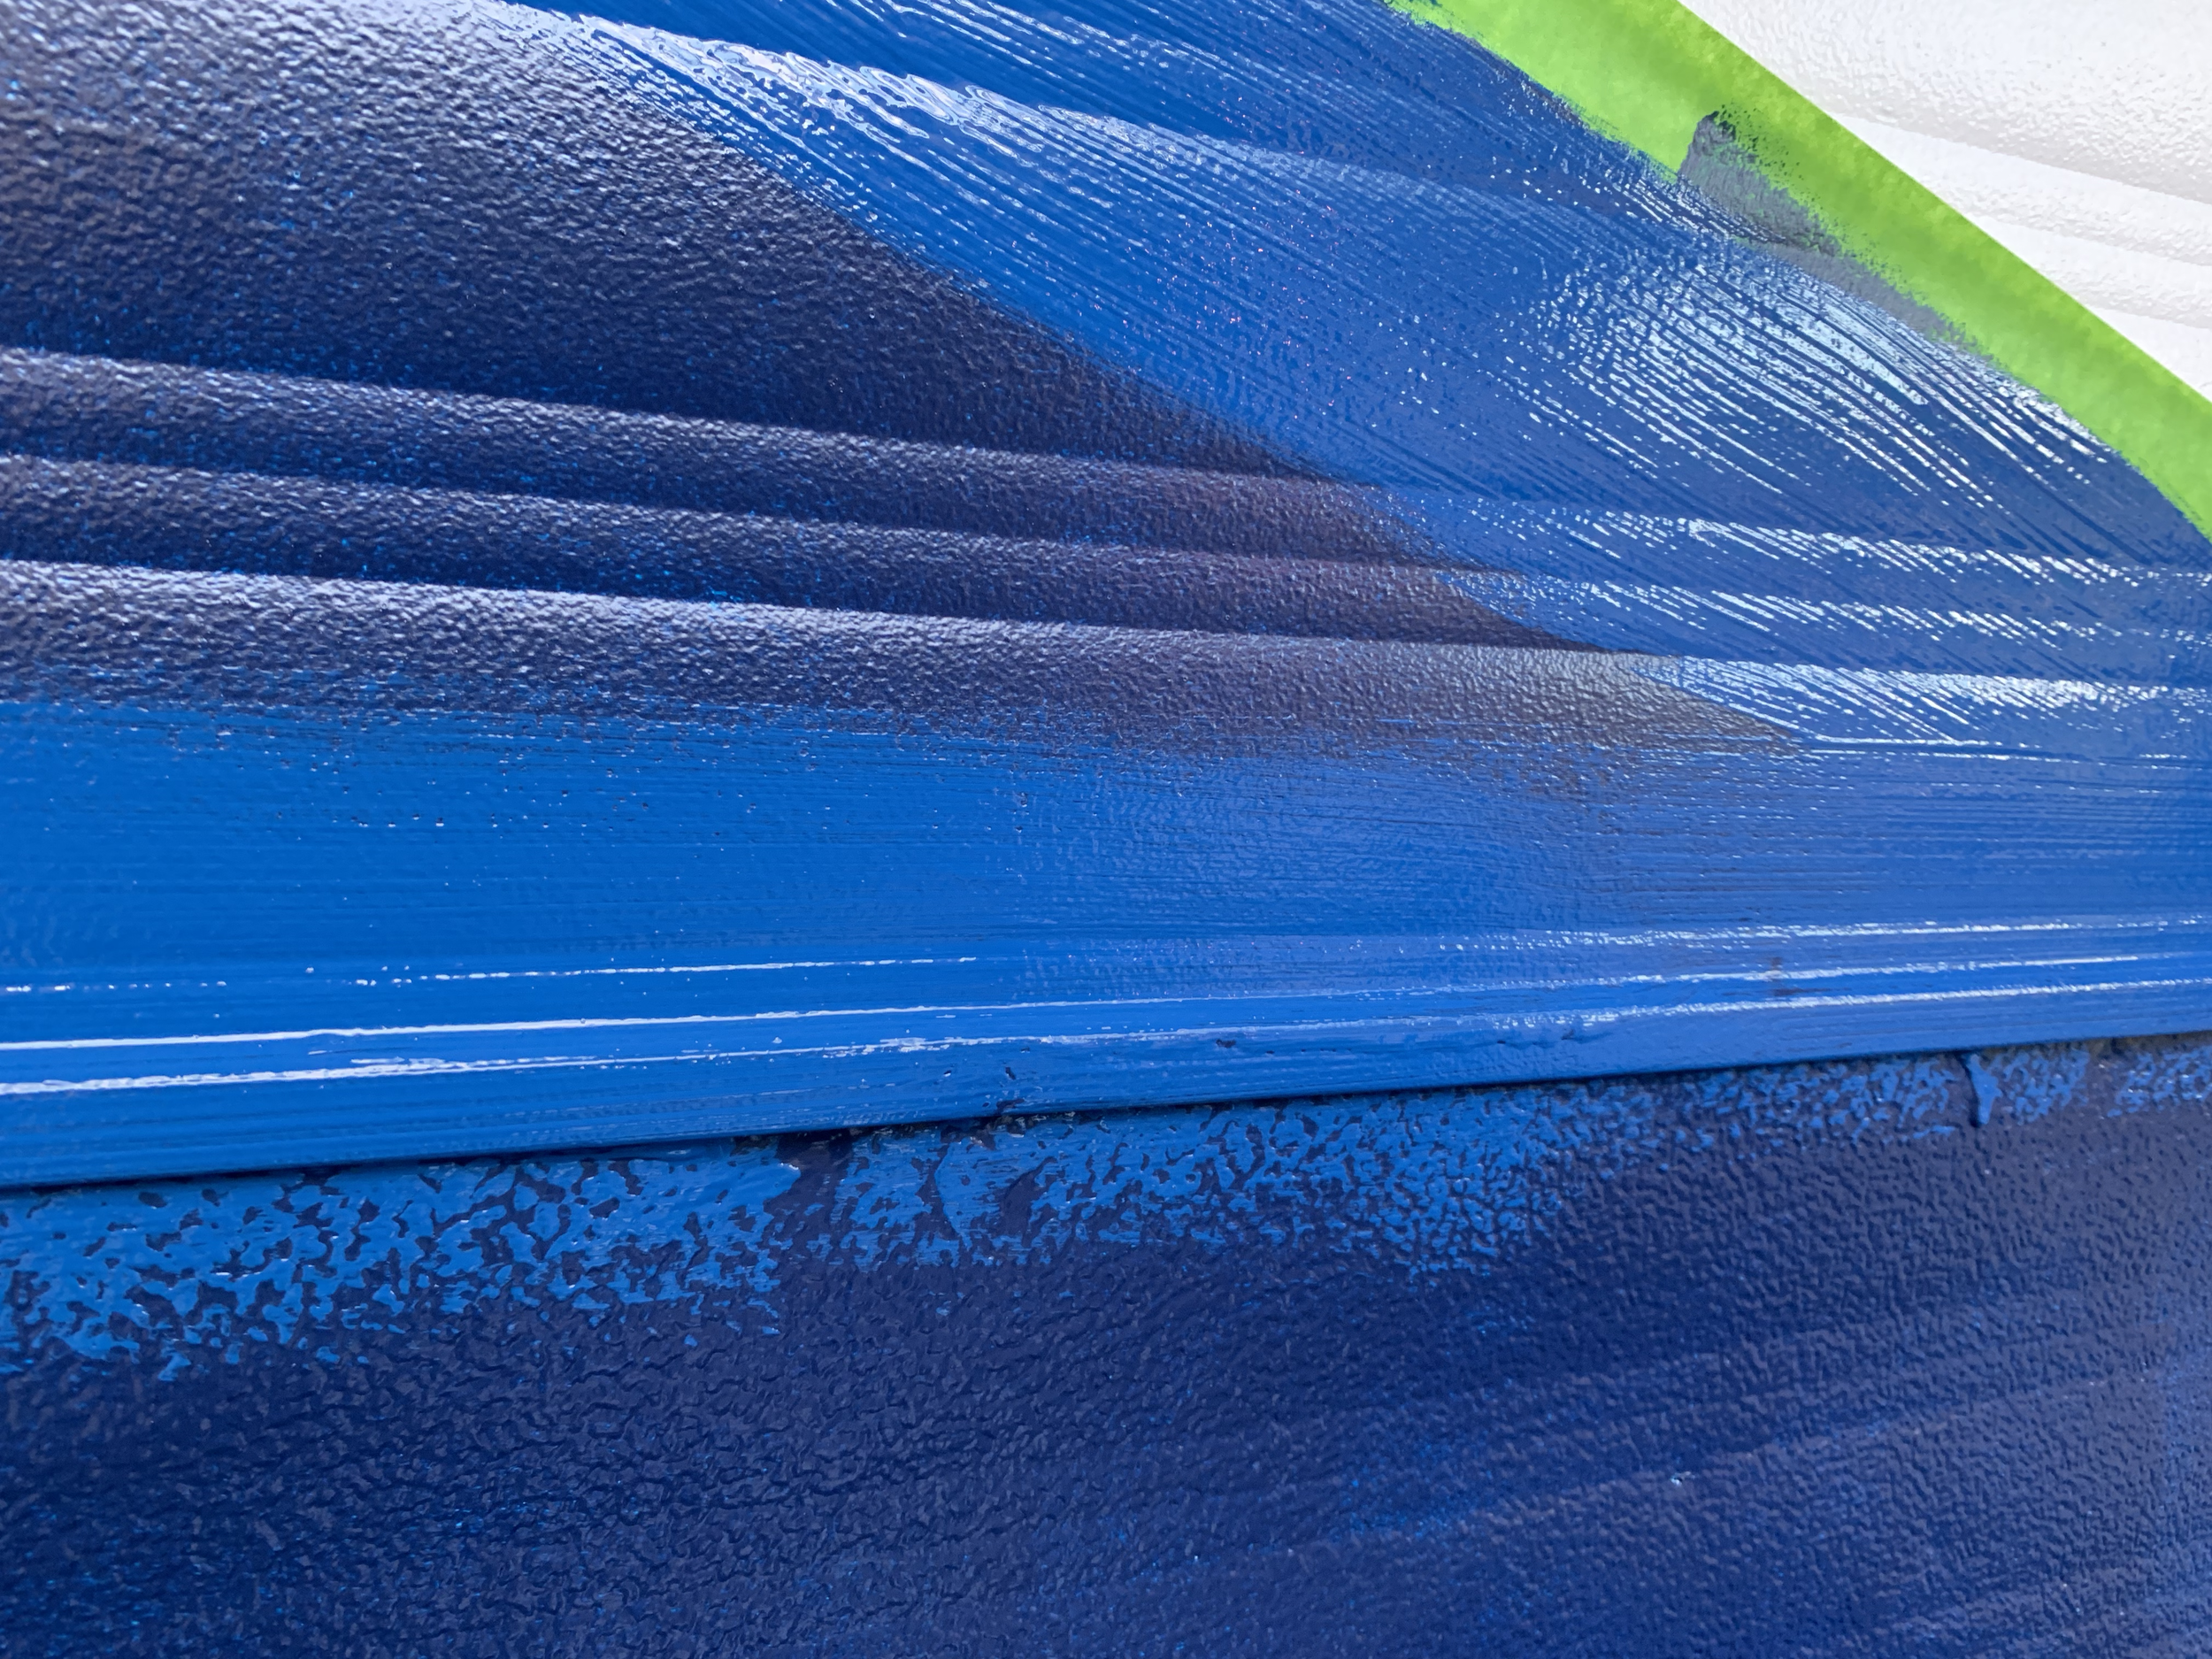 Wet color on top of two coats of dry paint